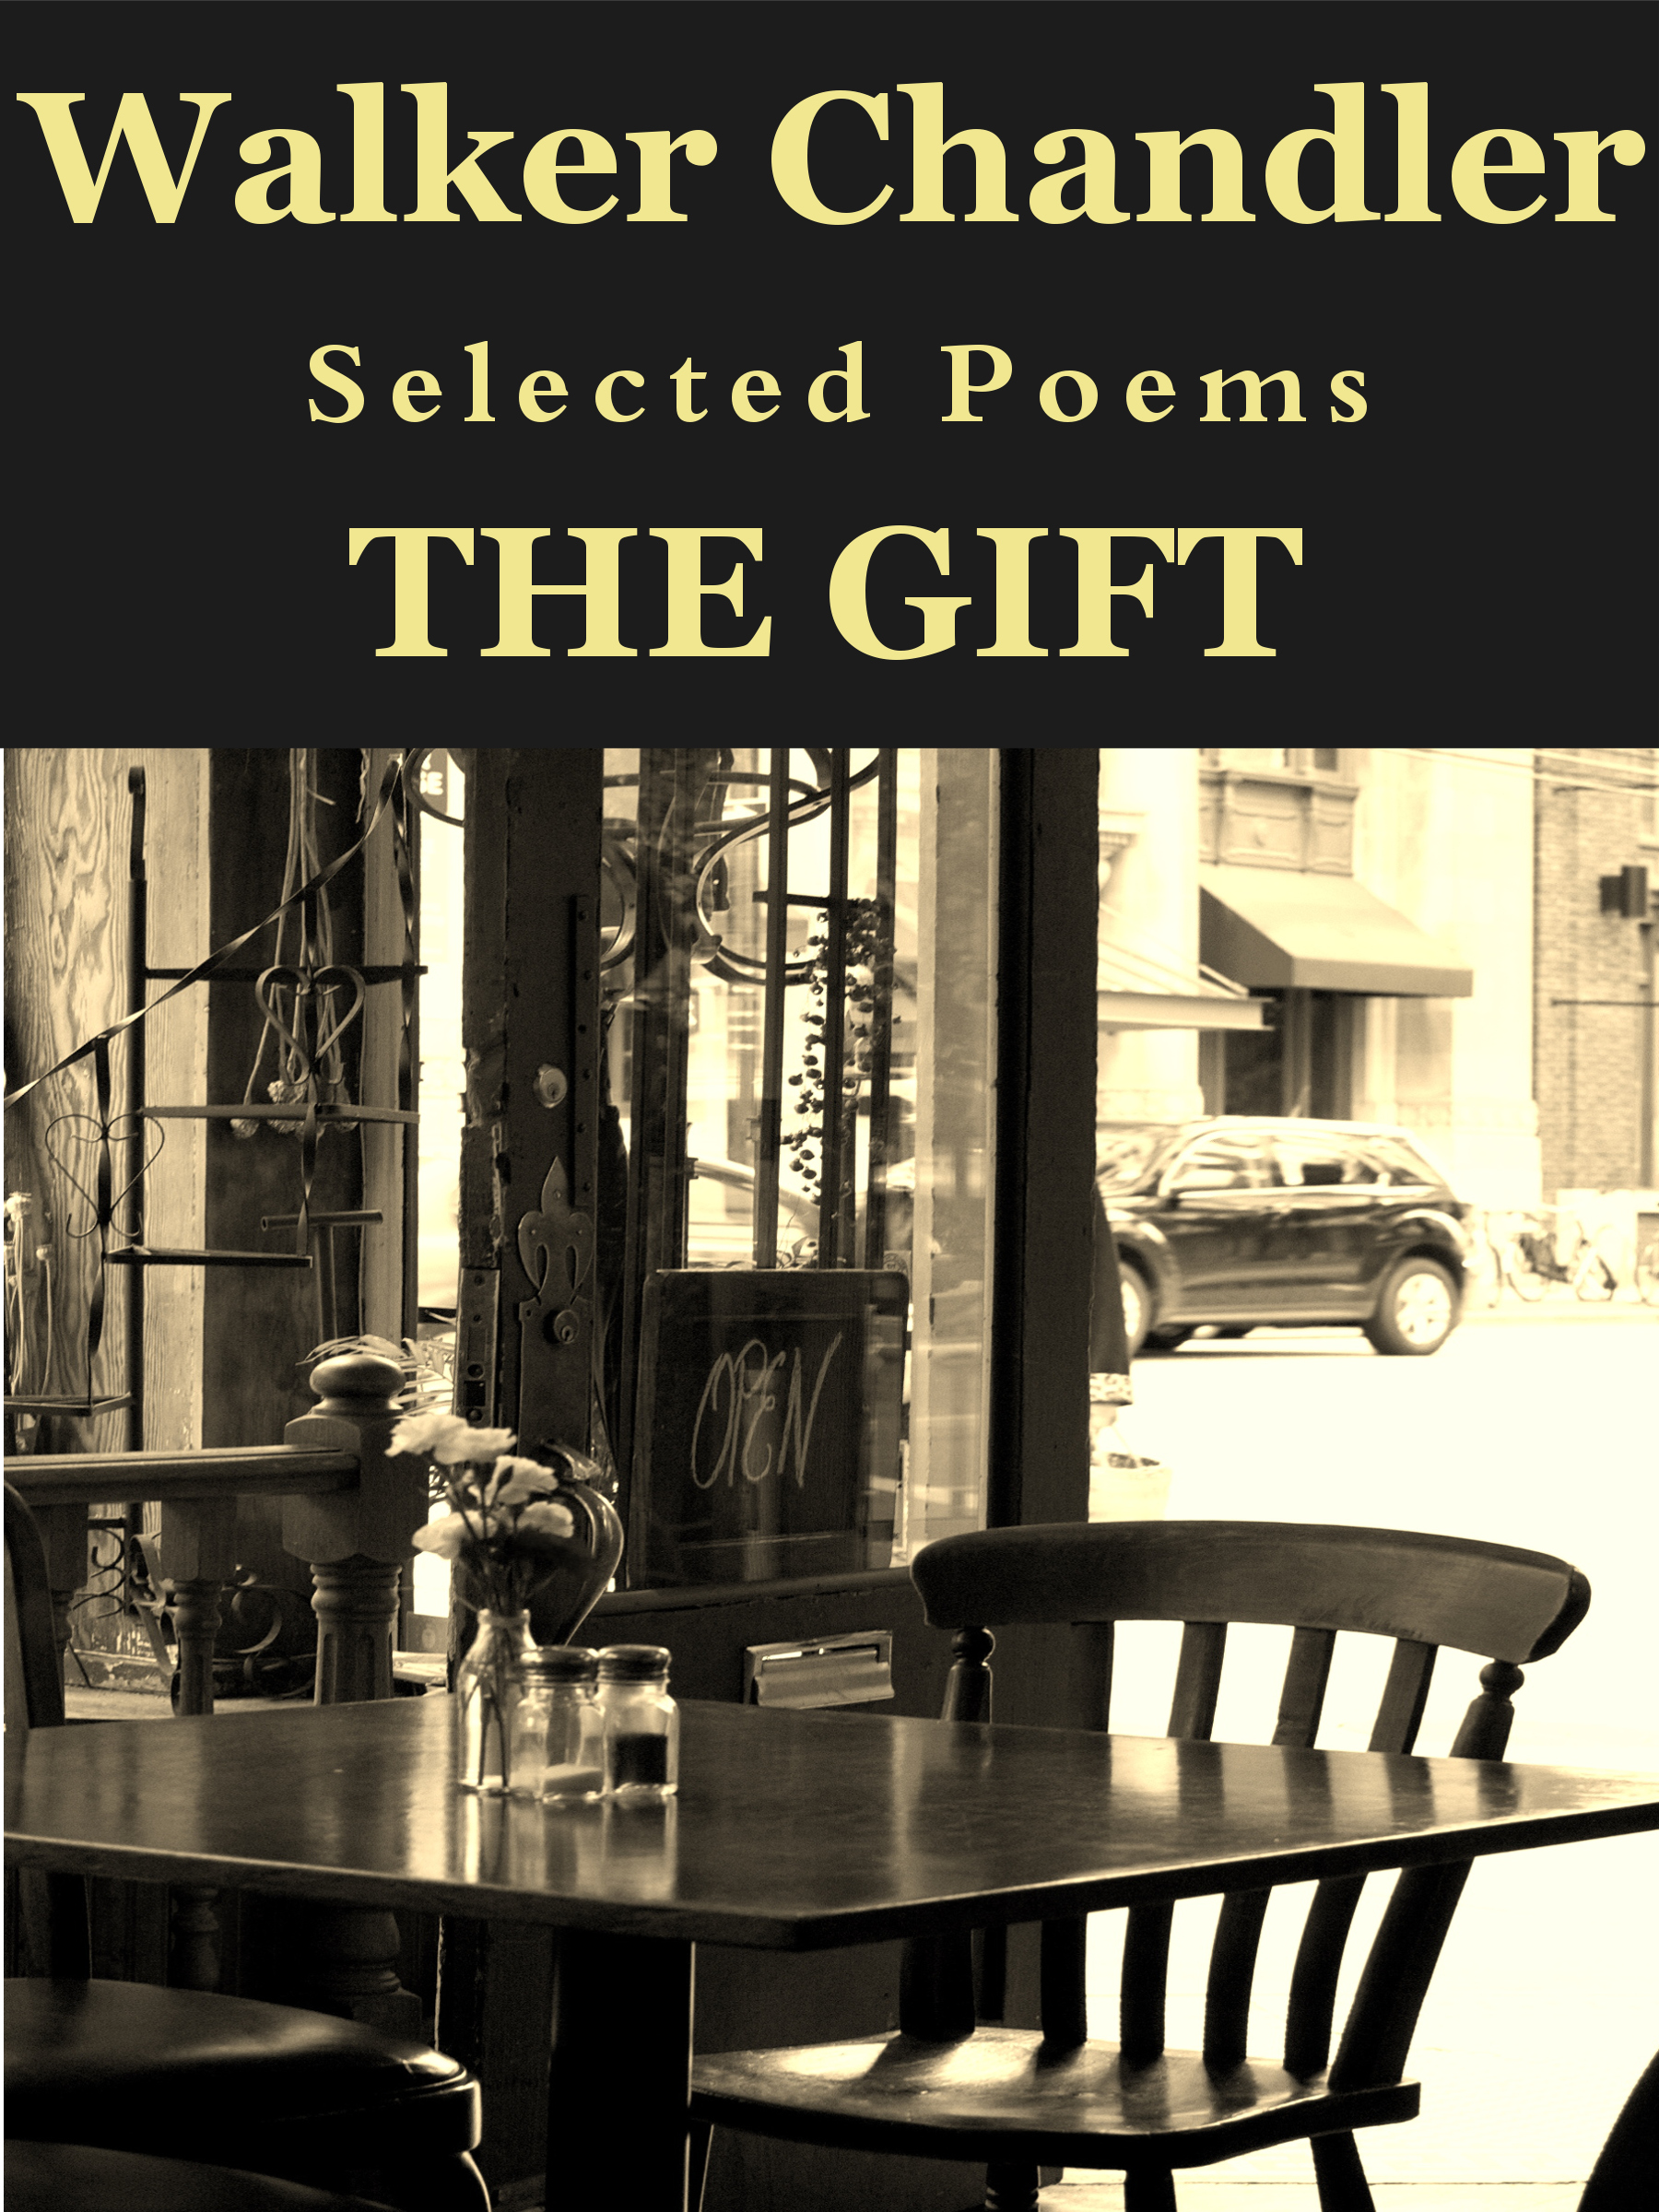 The Gift, a volume of poetry